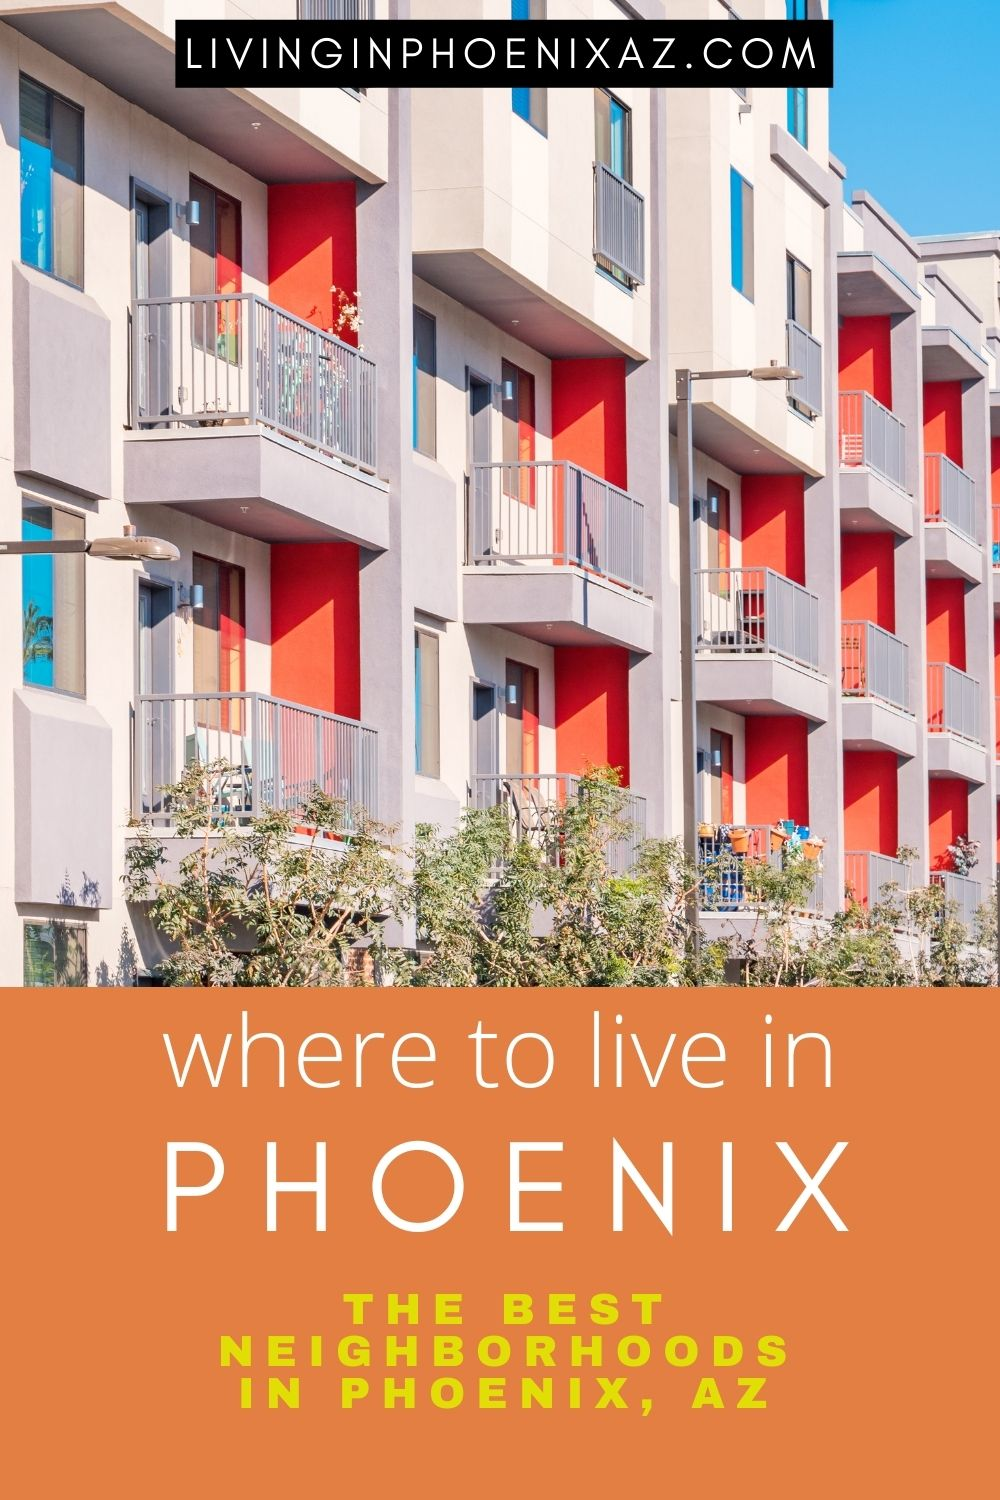 where to live in phx pins (3)